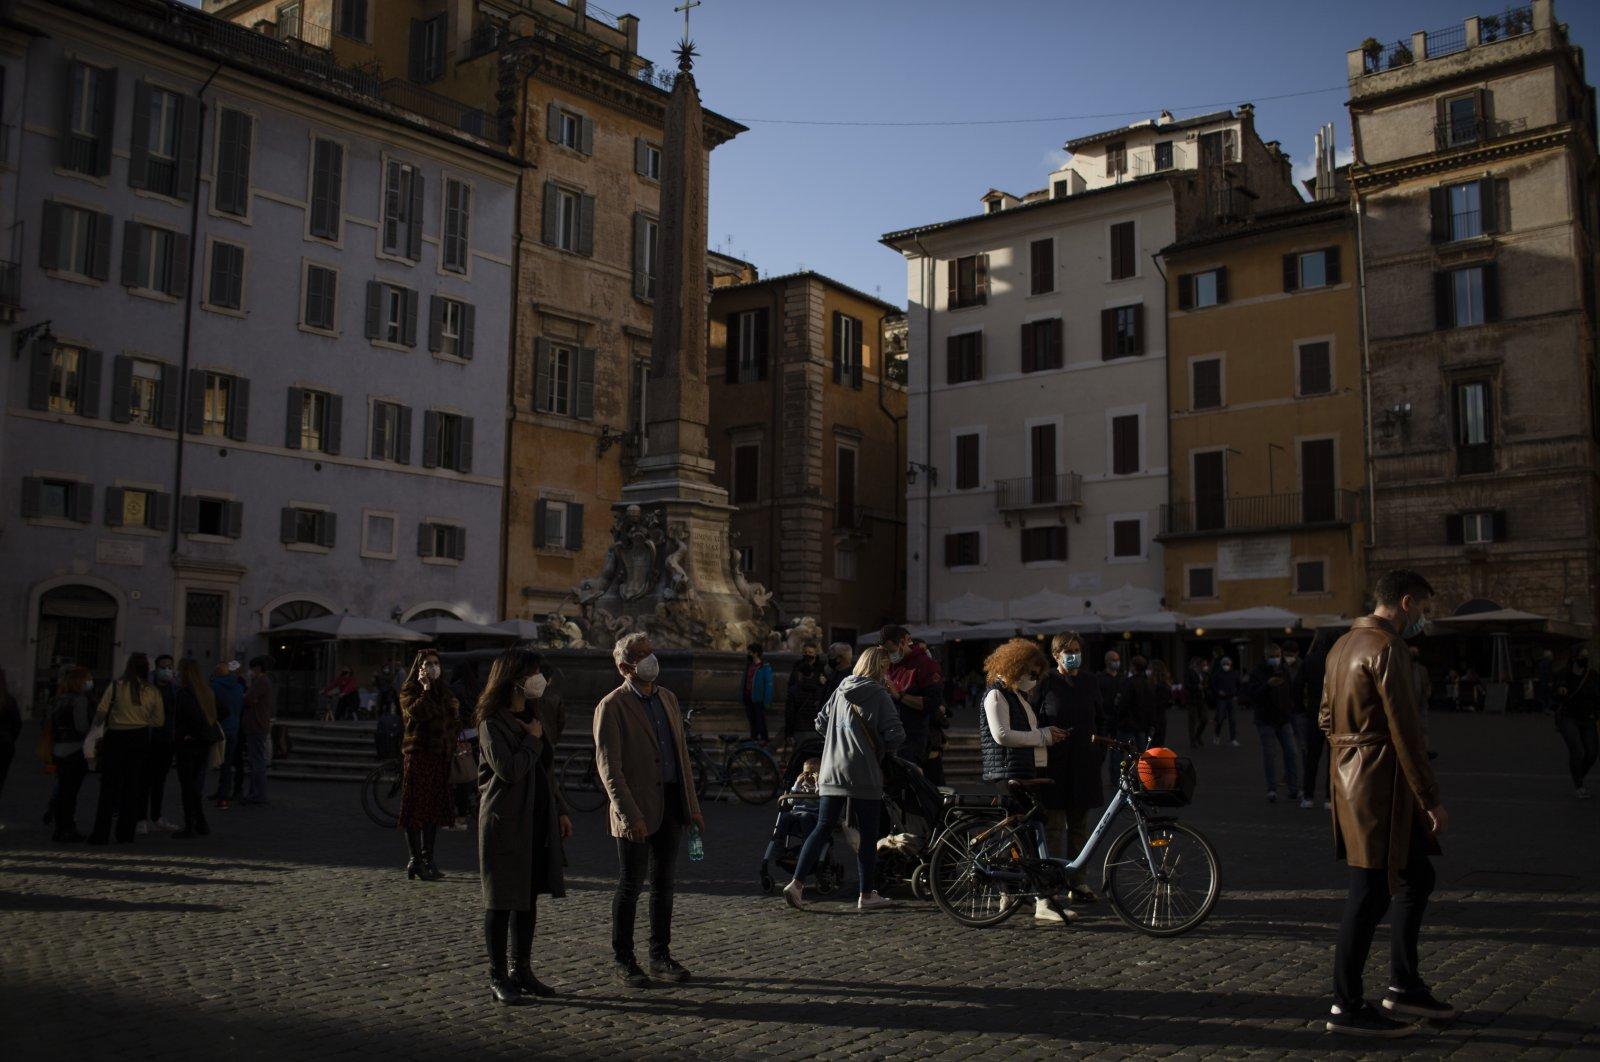 People spend their time outdoors amid the coronavirus spread, central Rome, Italy, March 13, 2021. (Photo by Getty Images)